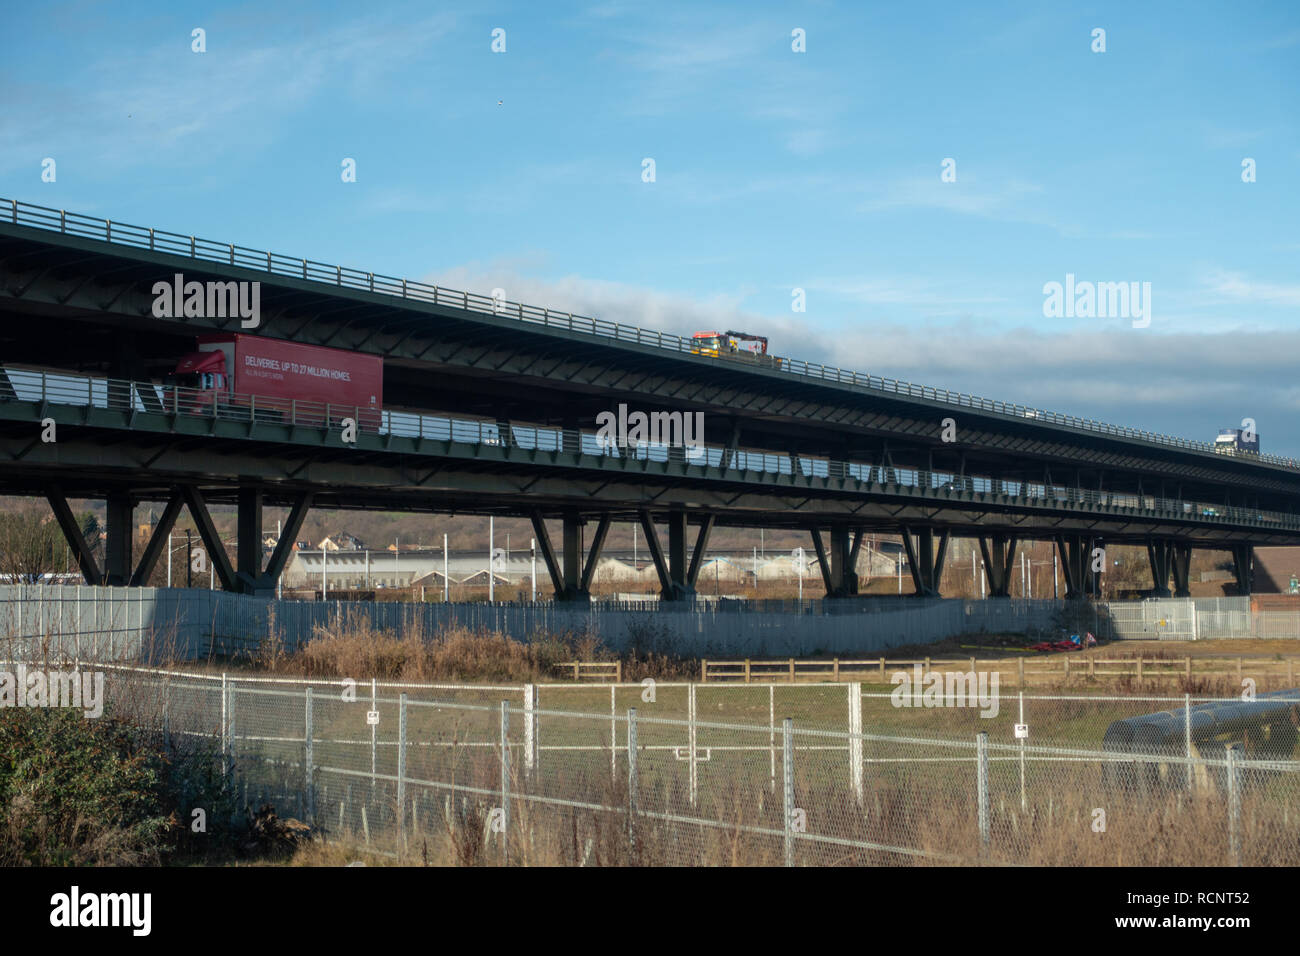 Tinsley Viaduct, a two tier road bridge at Tinsley, Sheffield. - Stock Image